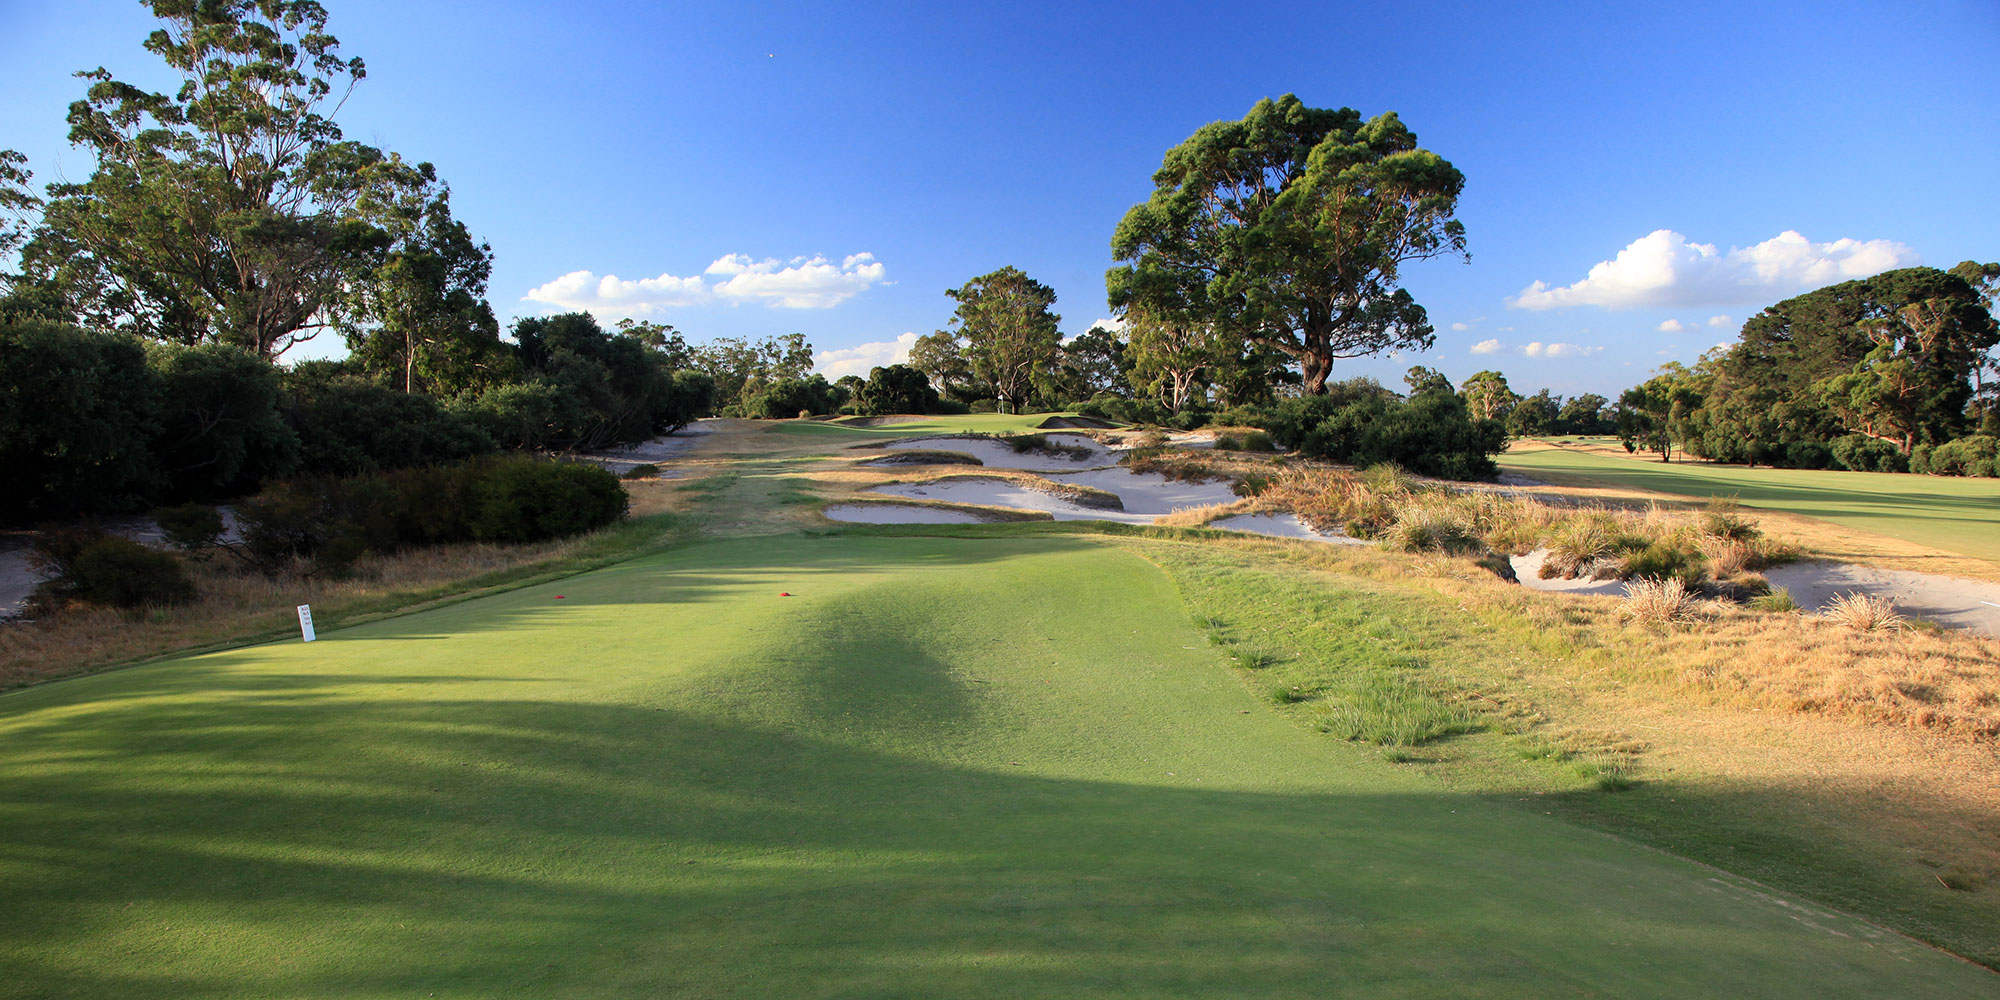 Melbourne Sandbelt Tour | 15 - 19 March 2021 | 4 nights, 5 games